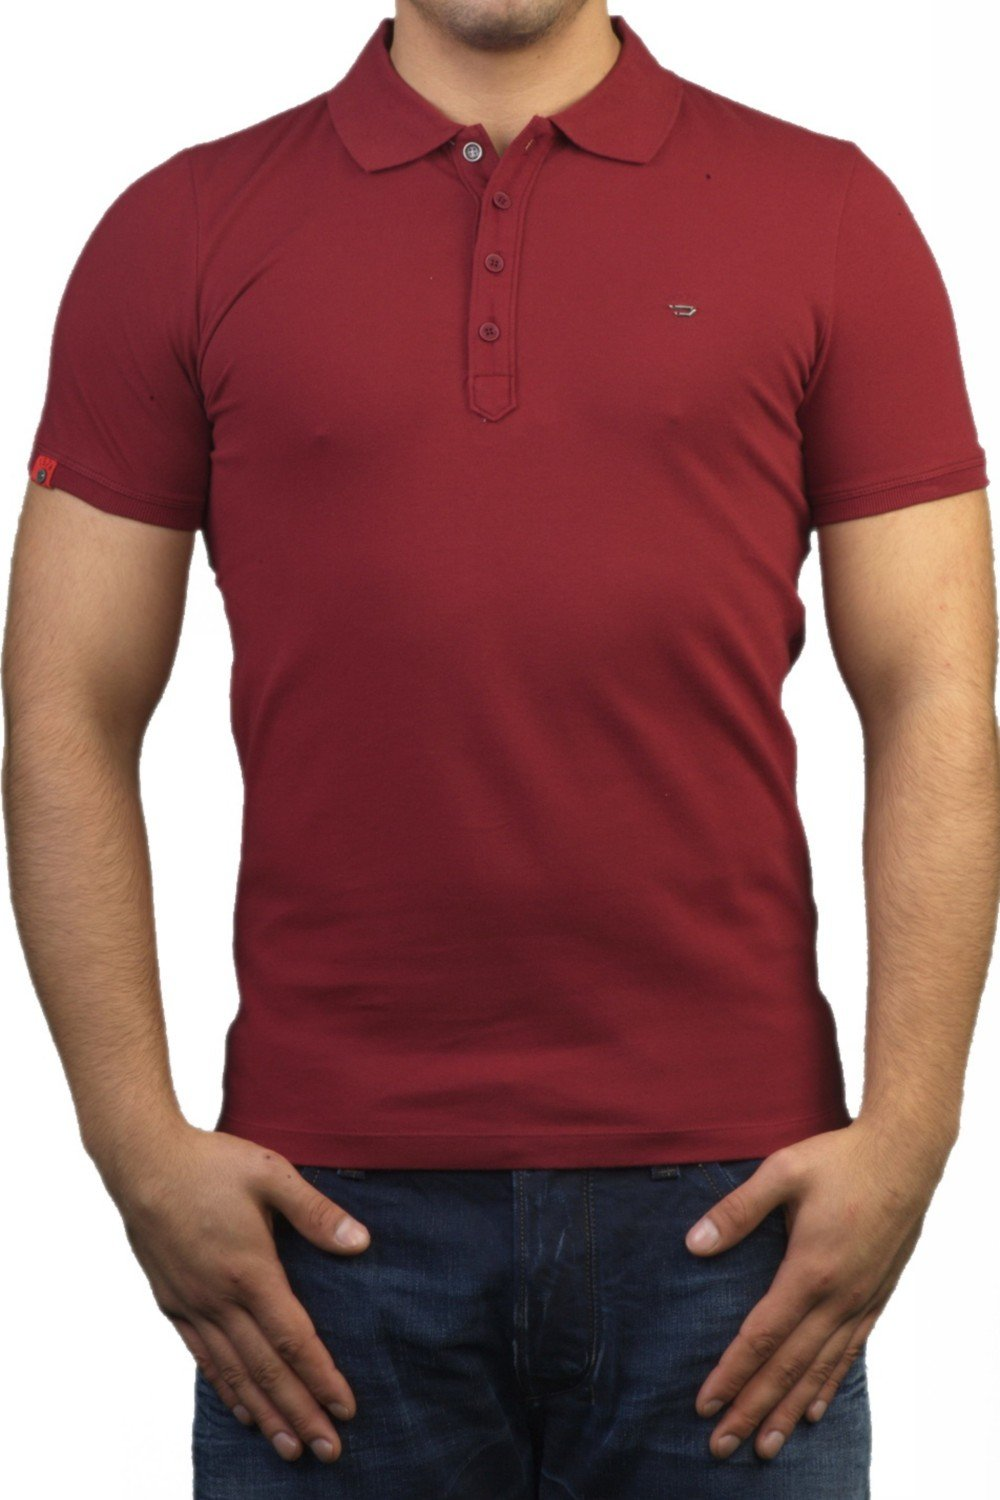 diesel slim fit polo t shirt in burgundy red t nyx 40g ebay. Black Bedroom Furniture Sets. Home Design Ideas